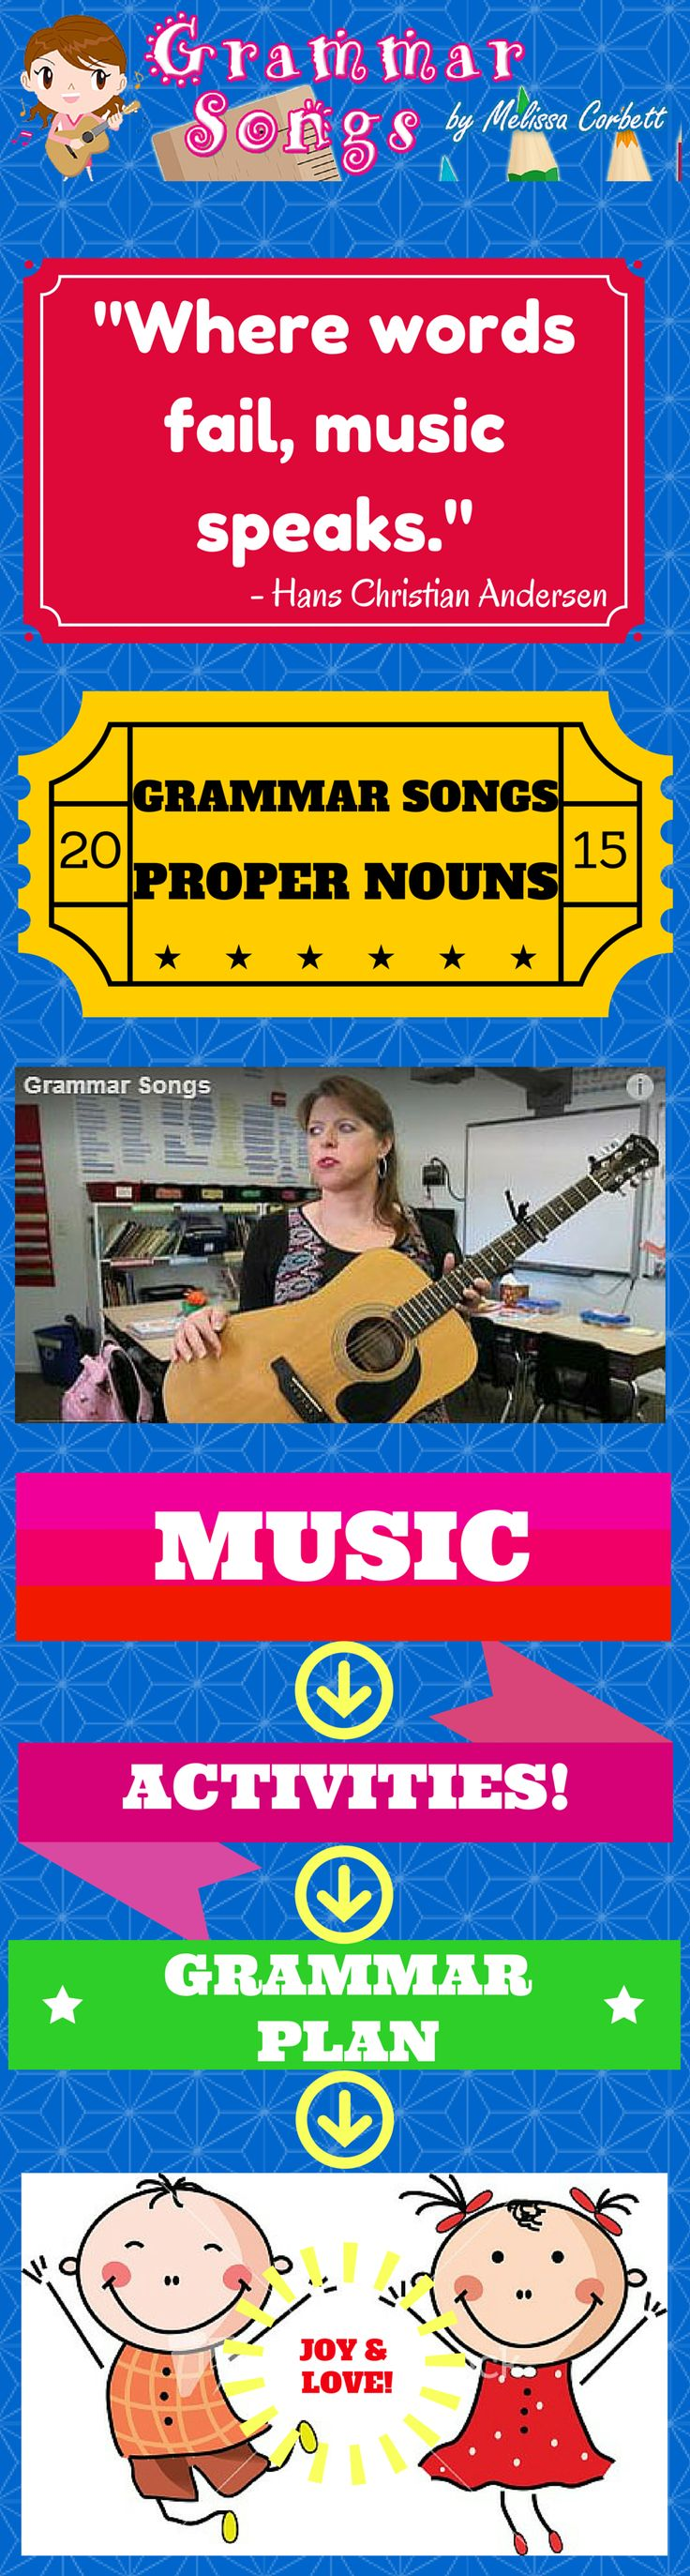 """(Free Grammar Videos and Activities) Proper Nouns by Melissa...This song was written to highlight the numerous cases where proper nouns need to be capitalized. When teaching the concept in class, I like to illustrate the way using a proper noun makes the noun more specific. For example, I could say """"The girl went to the restaurant."""" However, if I say, """"Inari went to Taco Bell,"""" the reader would have a much clearer picture in his/her head of what happened."""